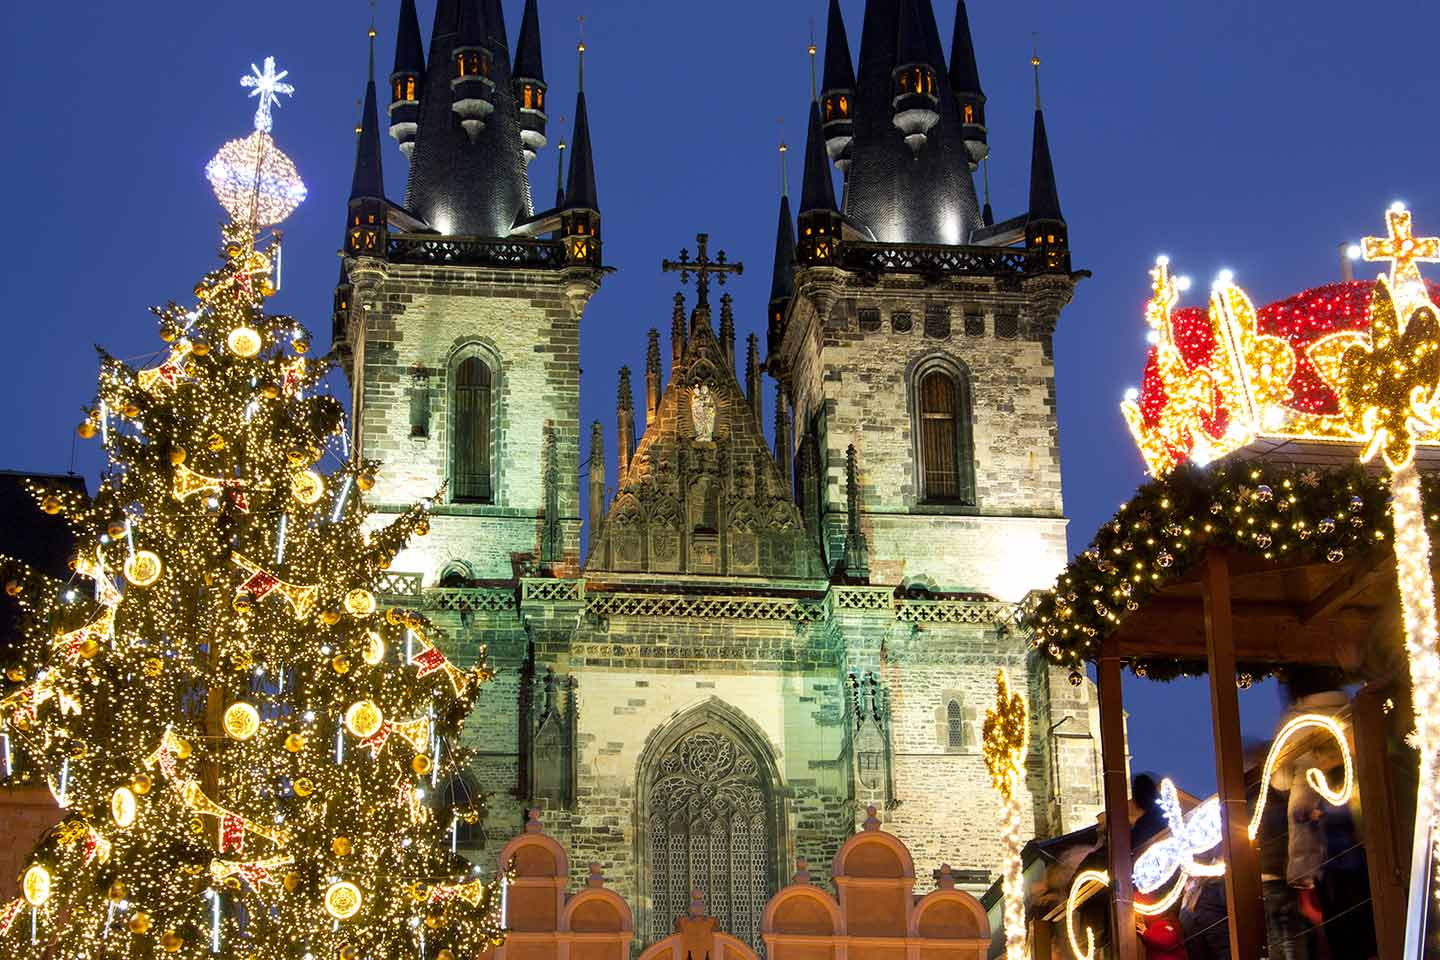 Image of The Church of Our Lady Before Týn and Prague Christmas Market